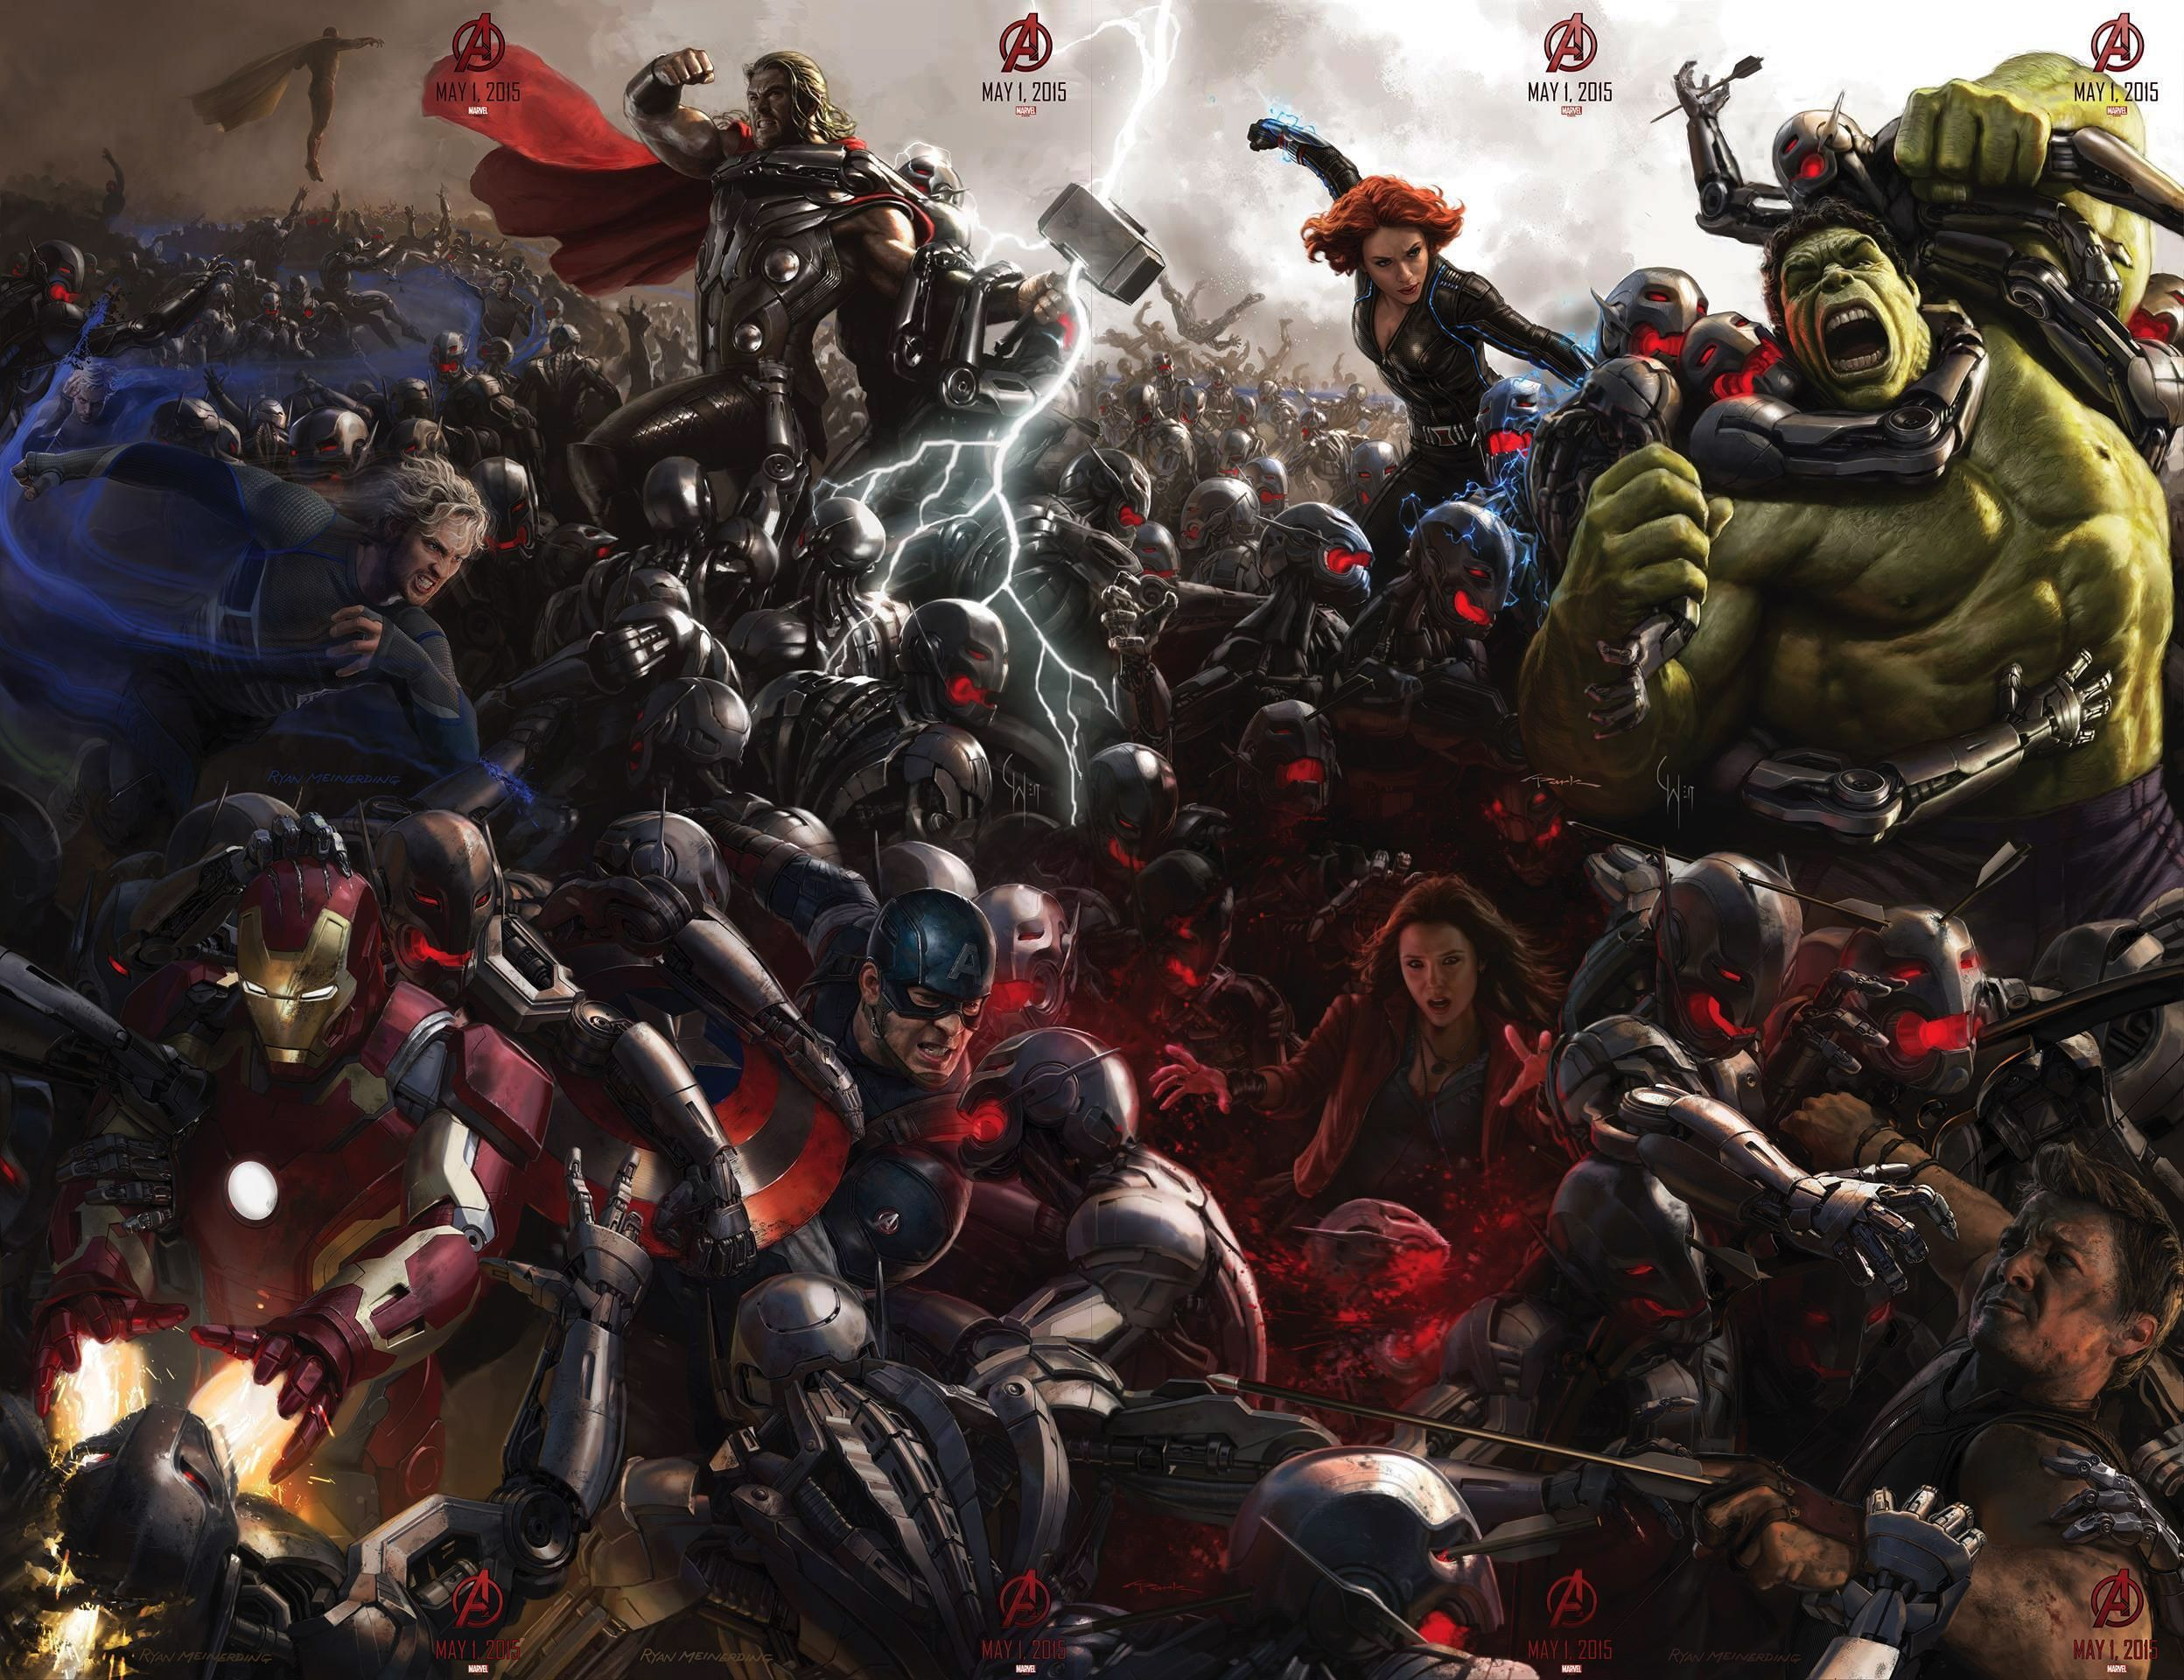 'Avengers: Age of Ultron' Comic-Con posters